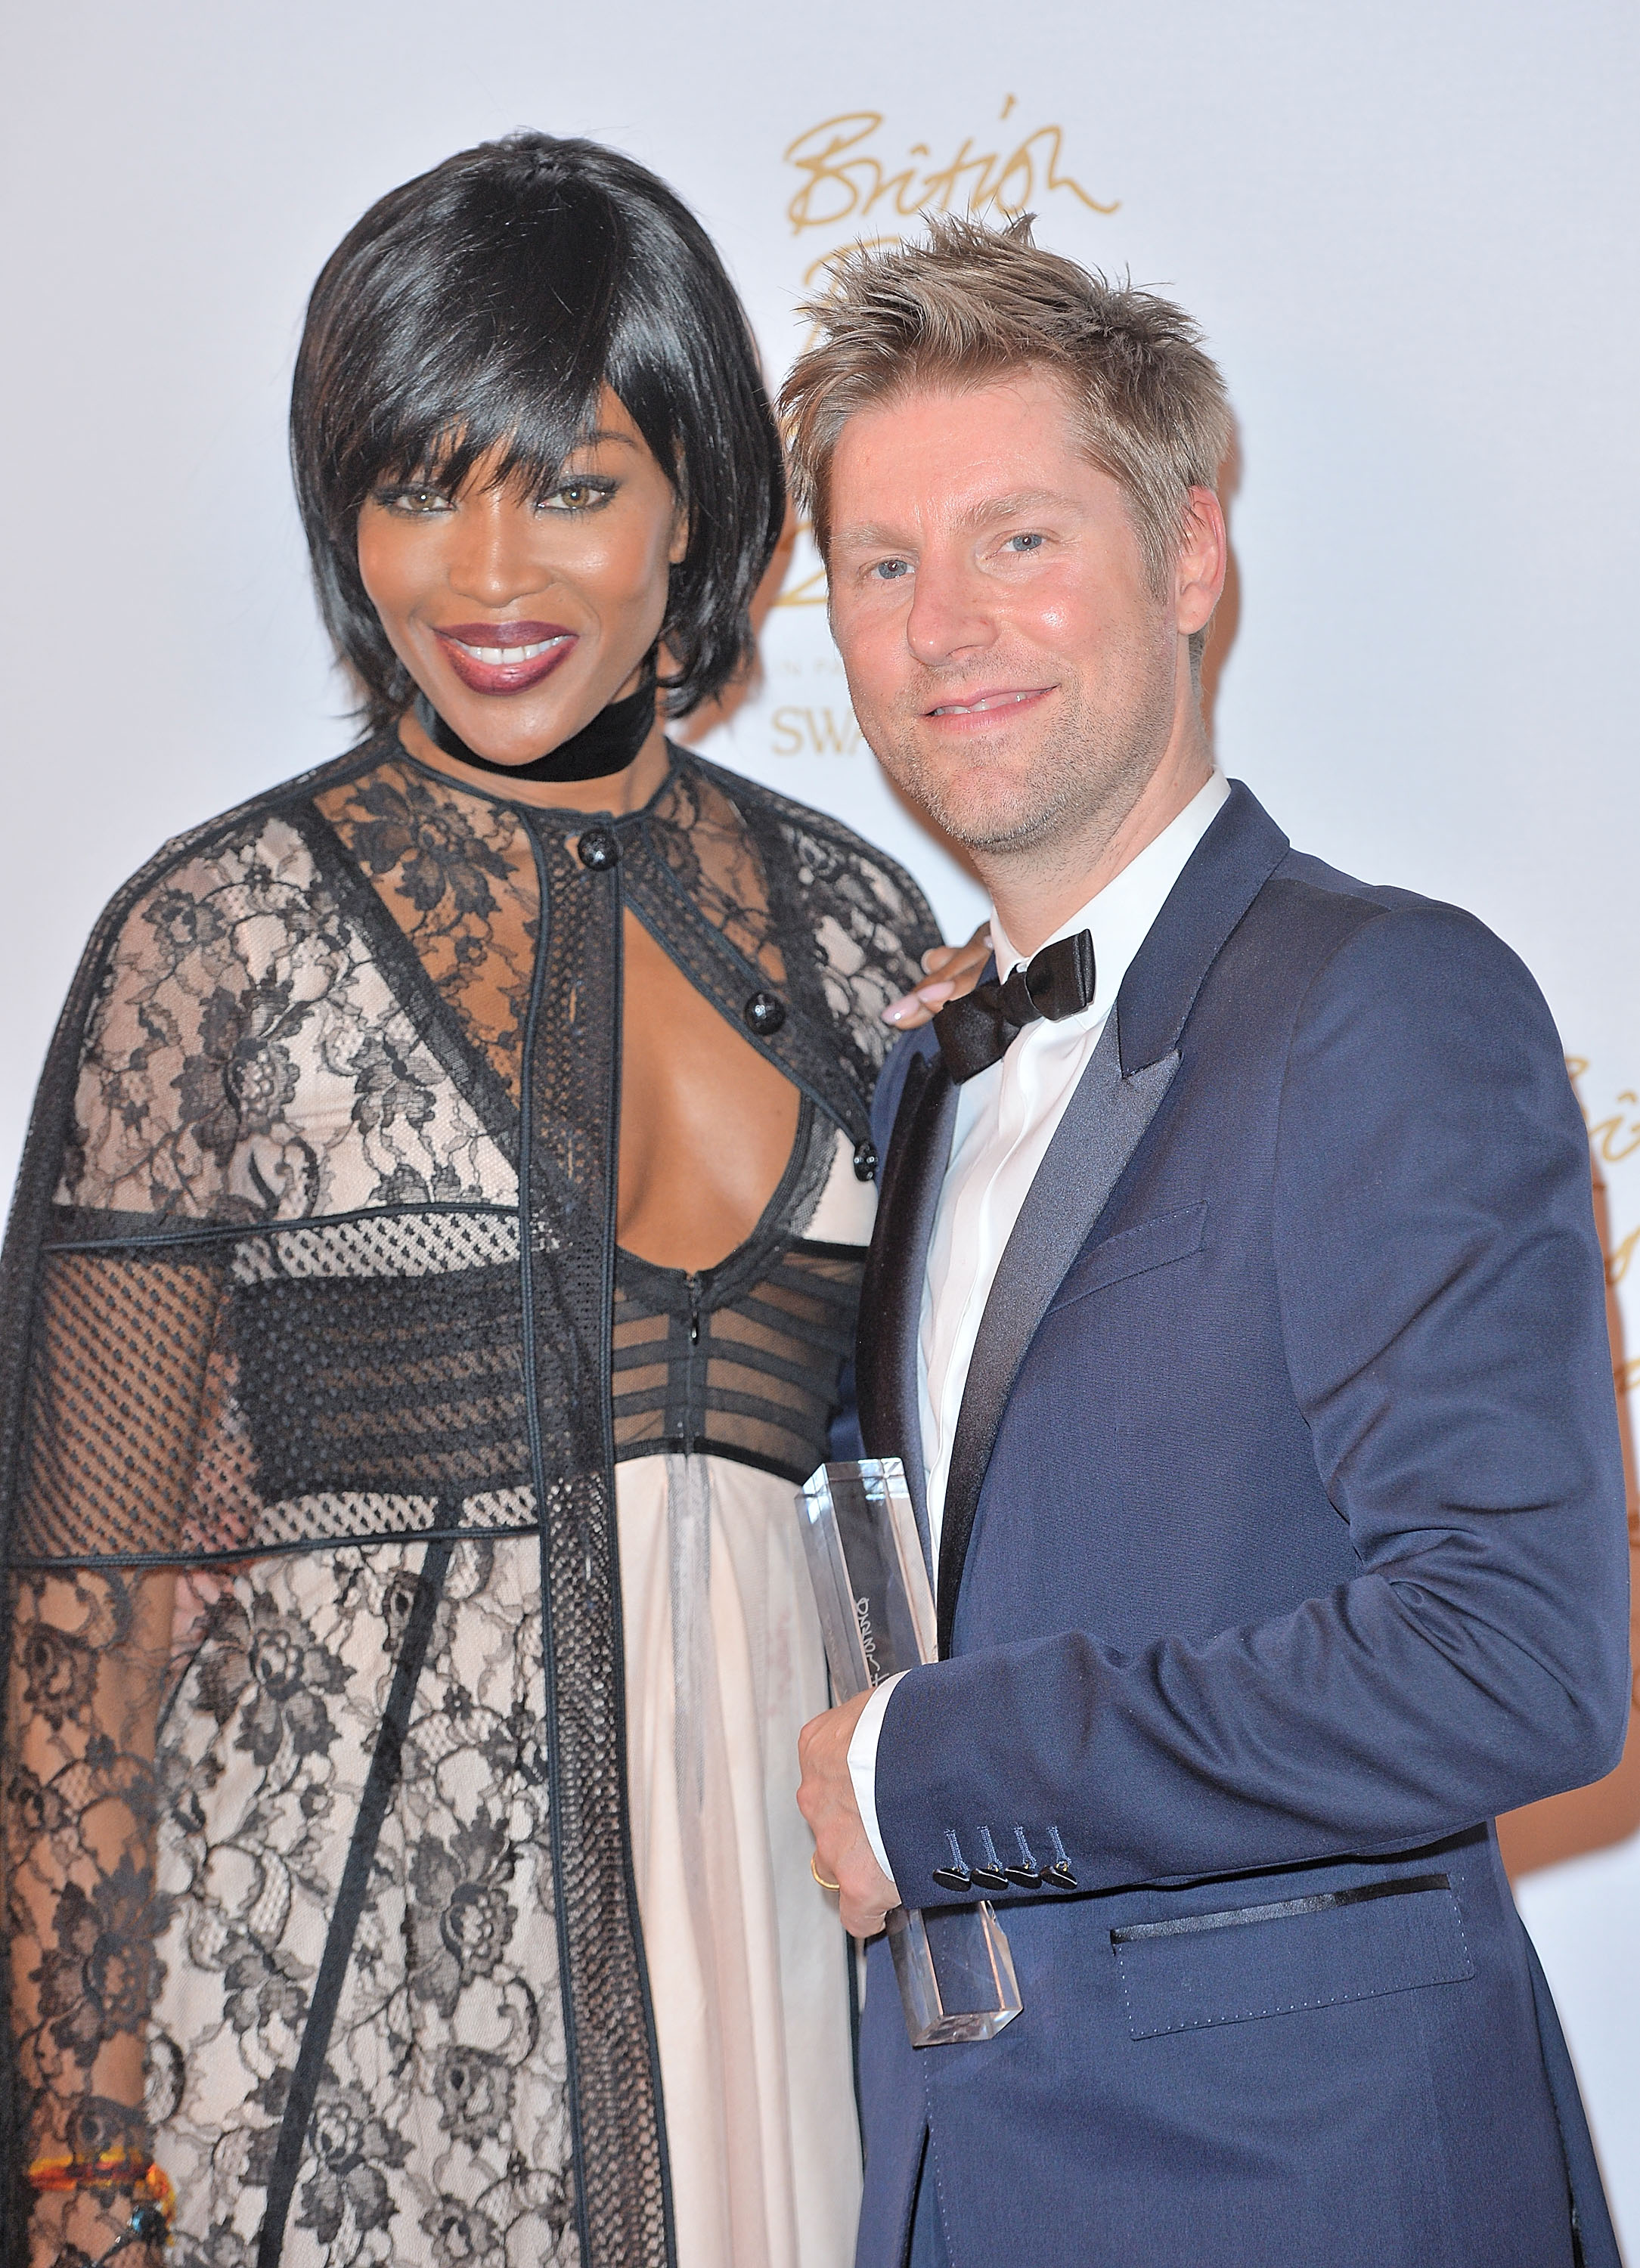 LONDON, ENGLAND - NOVEMBER 23: Naomi Campbell and Christopher Bailey pose in the Winners Room at the British Fashion Awards 2015 at London Coliseum on November 23, 2015 in London, England. (Photo by Anthony Harvey/Getty Images)